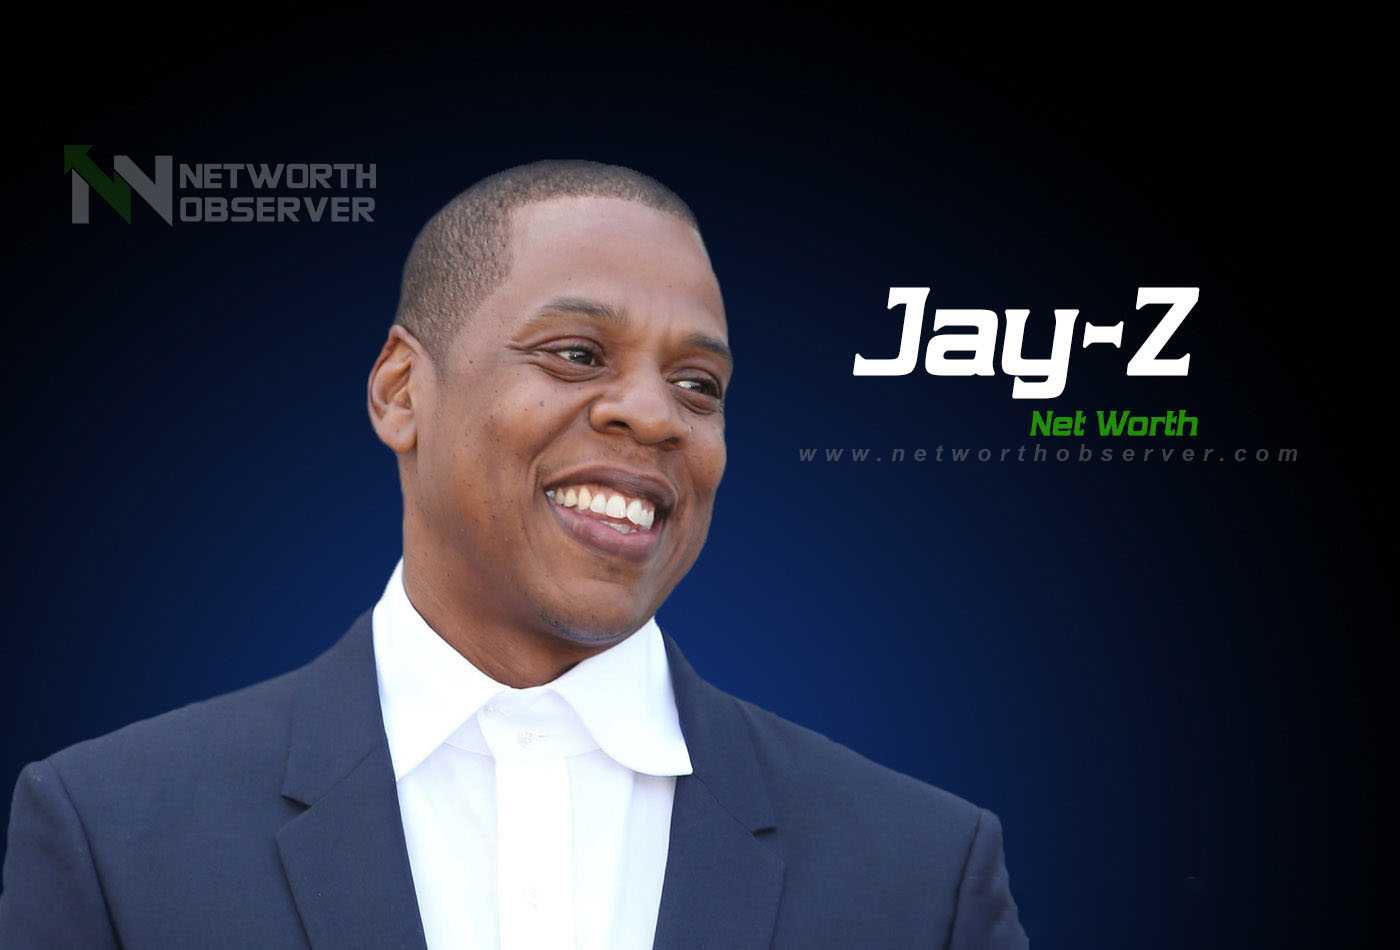 Photo of Jay Z Net Worth And His Biography